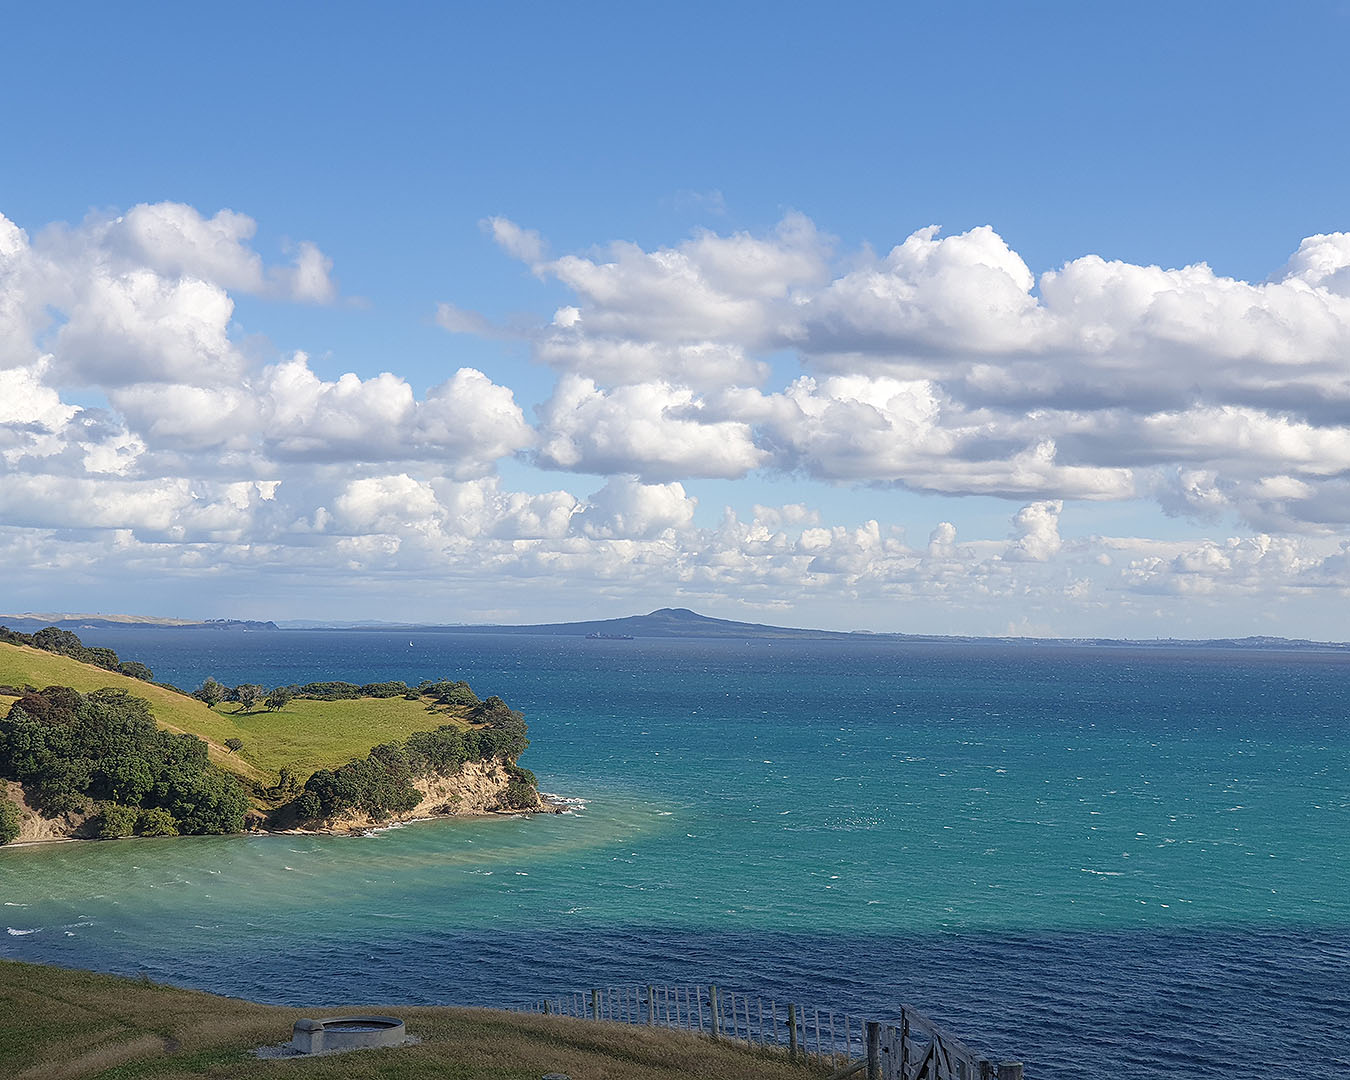 Impossibly blue sea at Shakespear regional park.